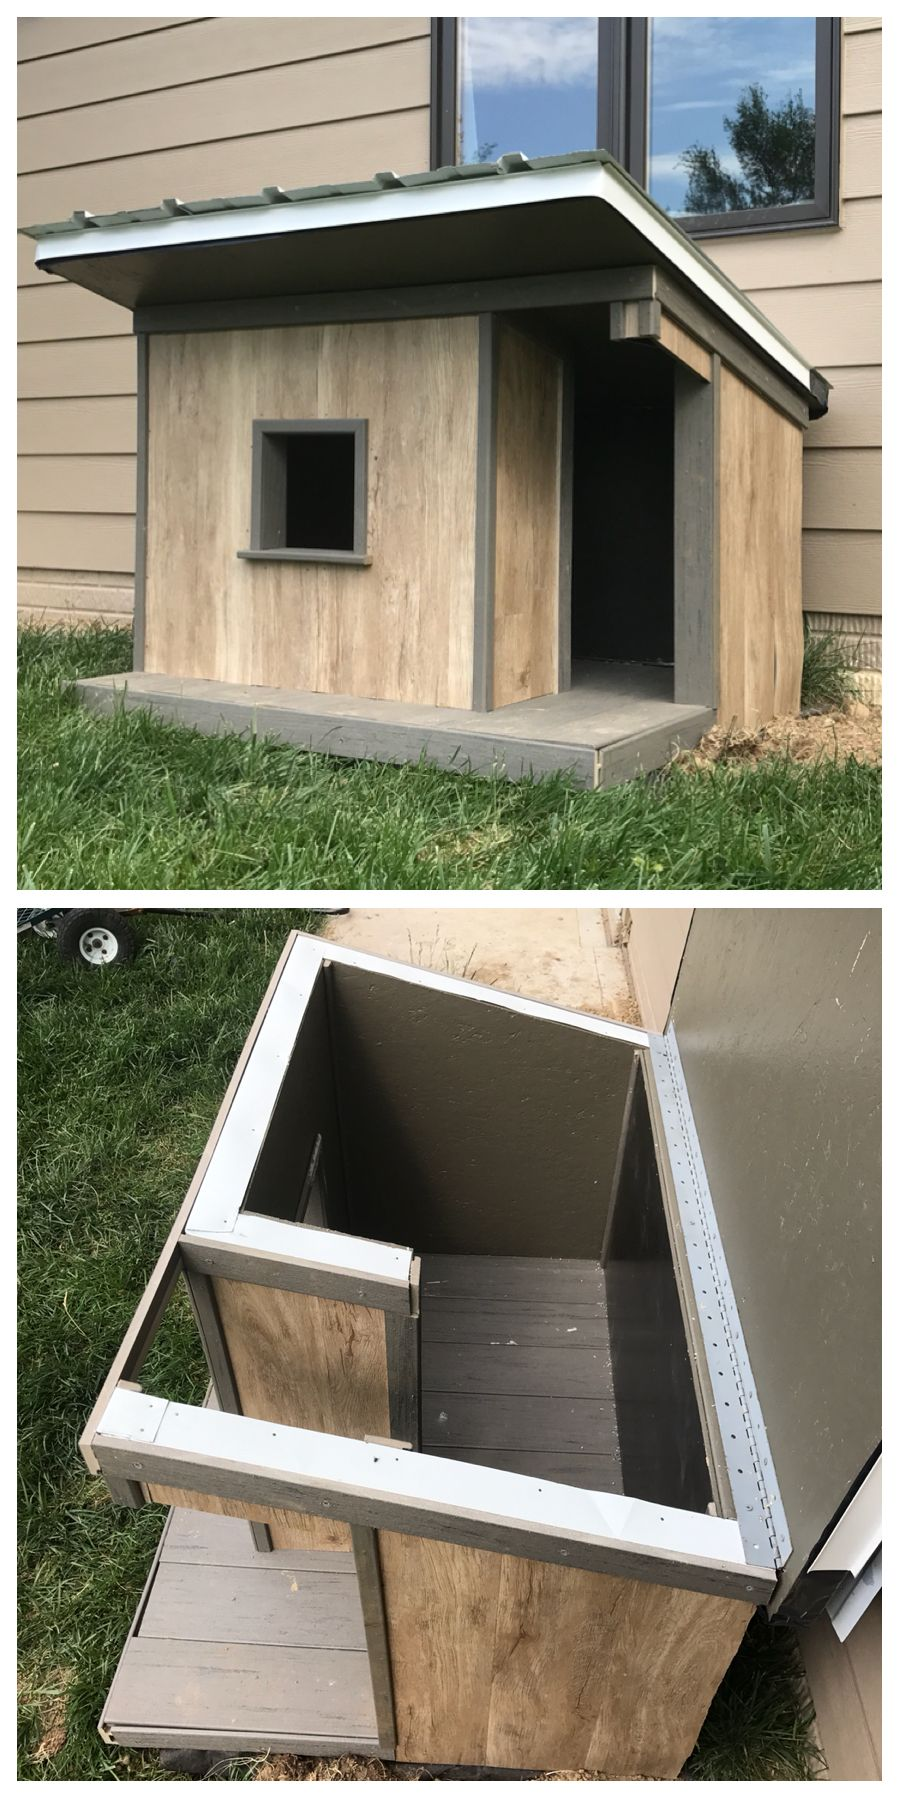 Insulated dog house my home pinterest insulated dog for Insulated heated dog house